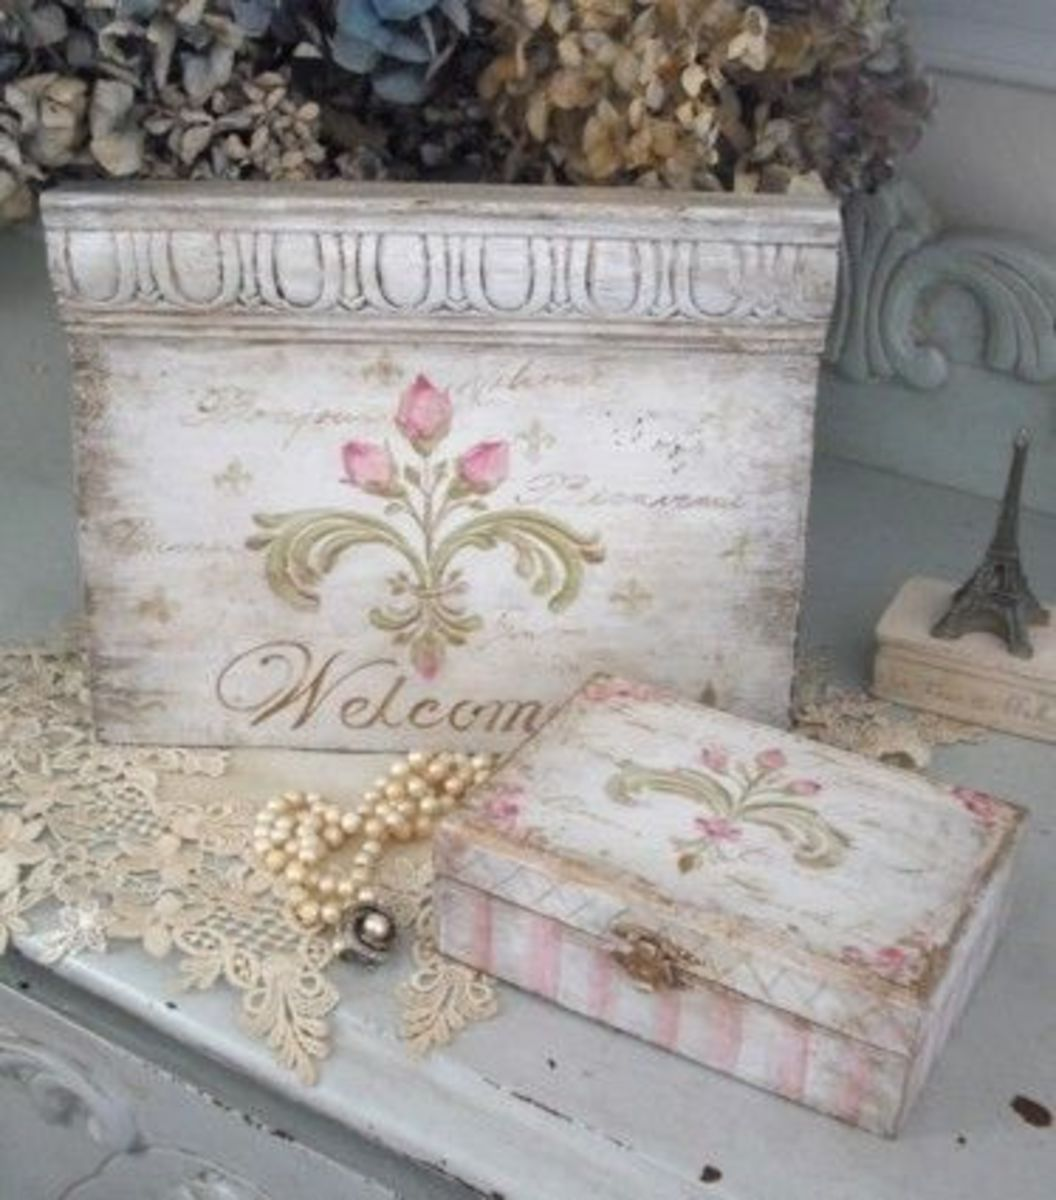 French shabby chic sign and trinket box